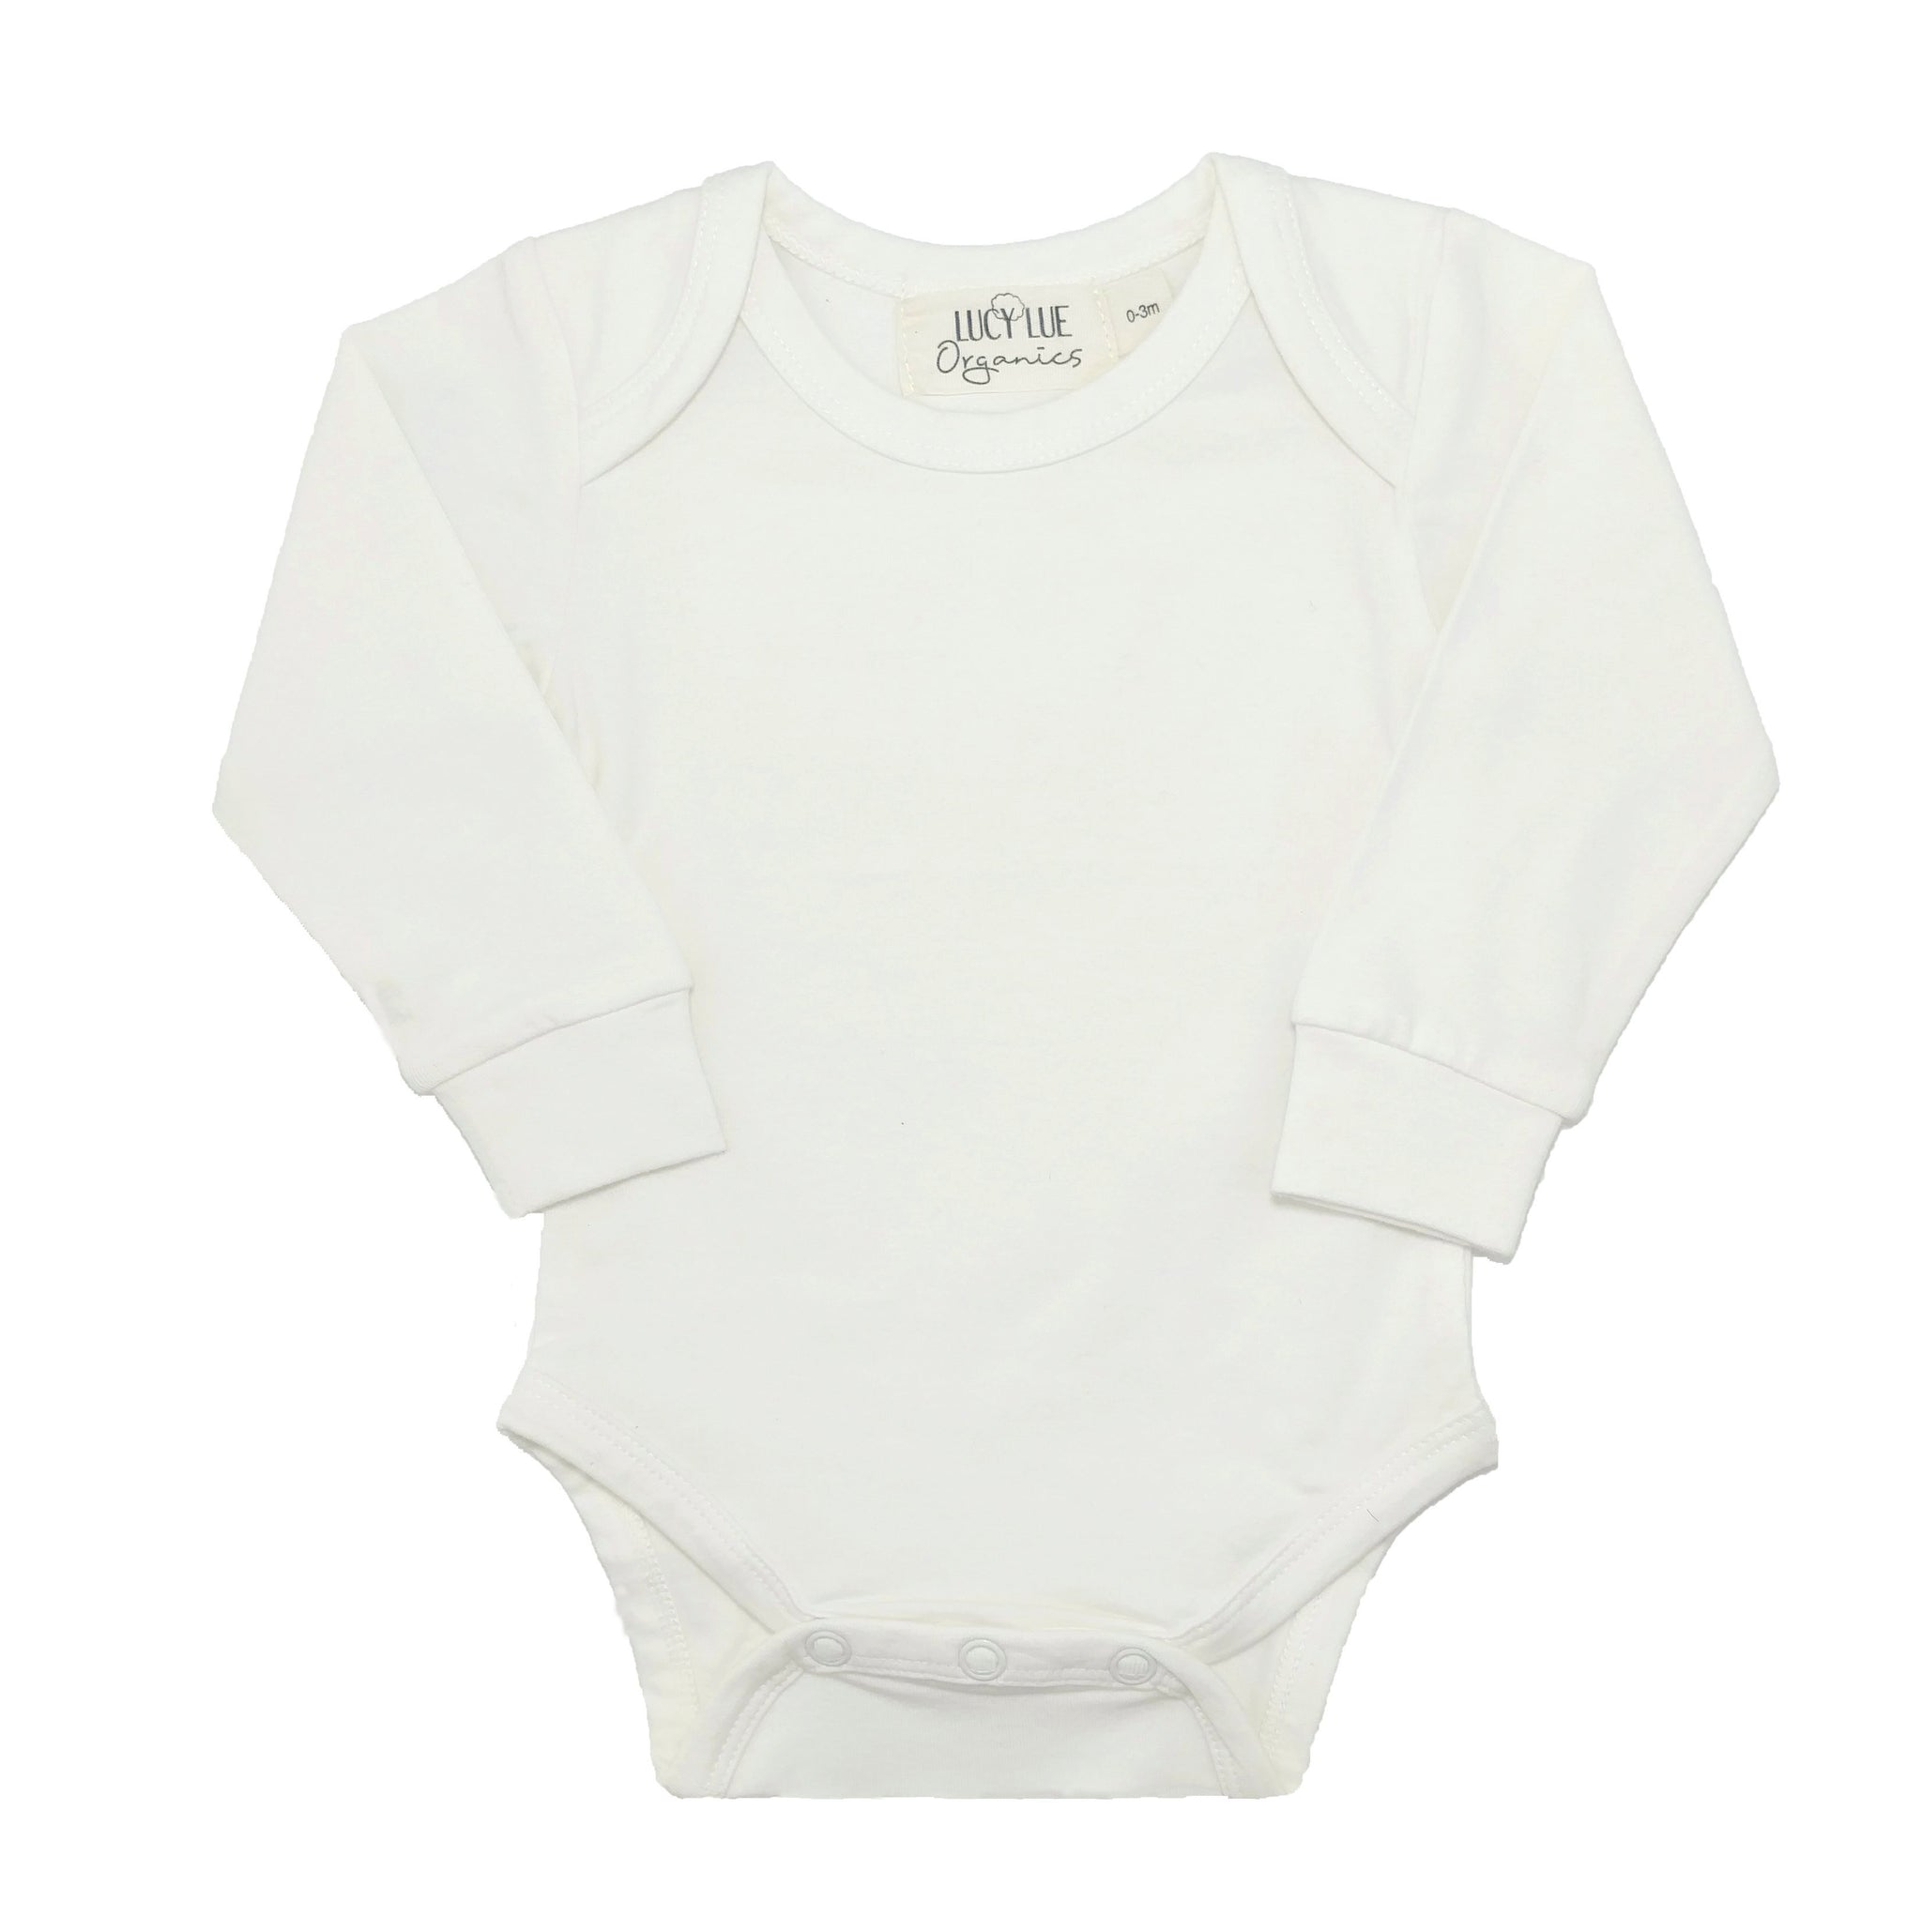 Best selling long sleeve organic baby bodysuit romper one-piece in the softest organic cotton fabric. Made by Lucy Lue Organics.  Popular gender neutral ivory color. Baby list must-have. Newborn take home outfit. Baby clothing. Baby clothes